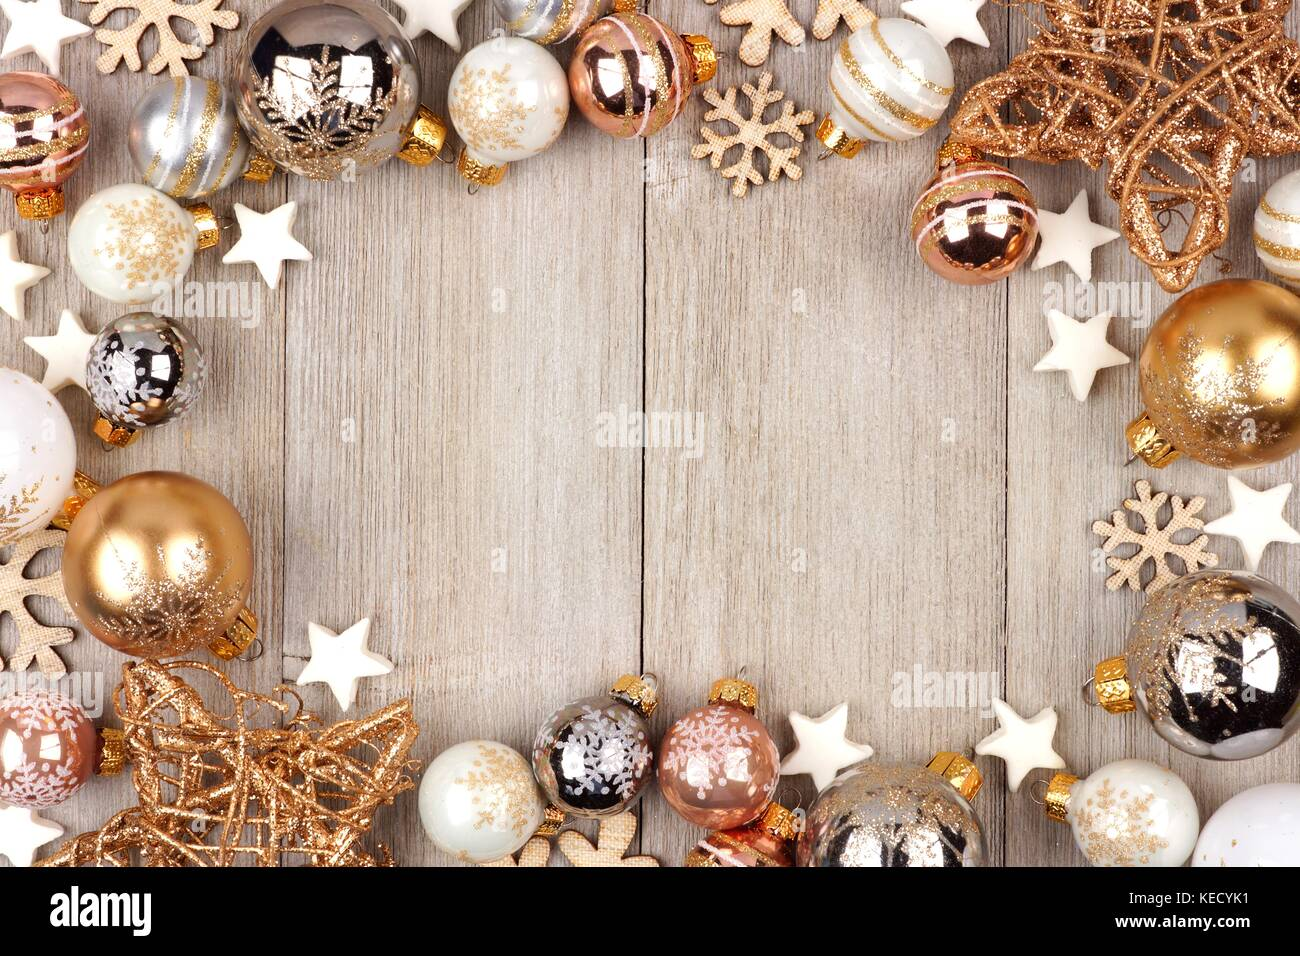 Ornaments Gold Star Stock Photos & Ornaments Gold Star Stock Images ...